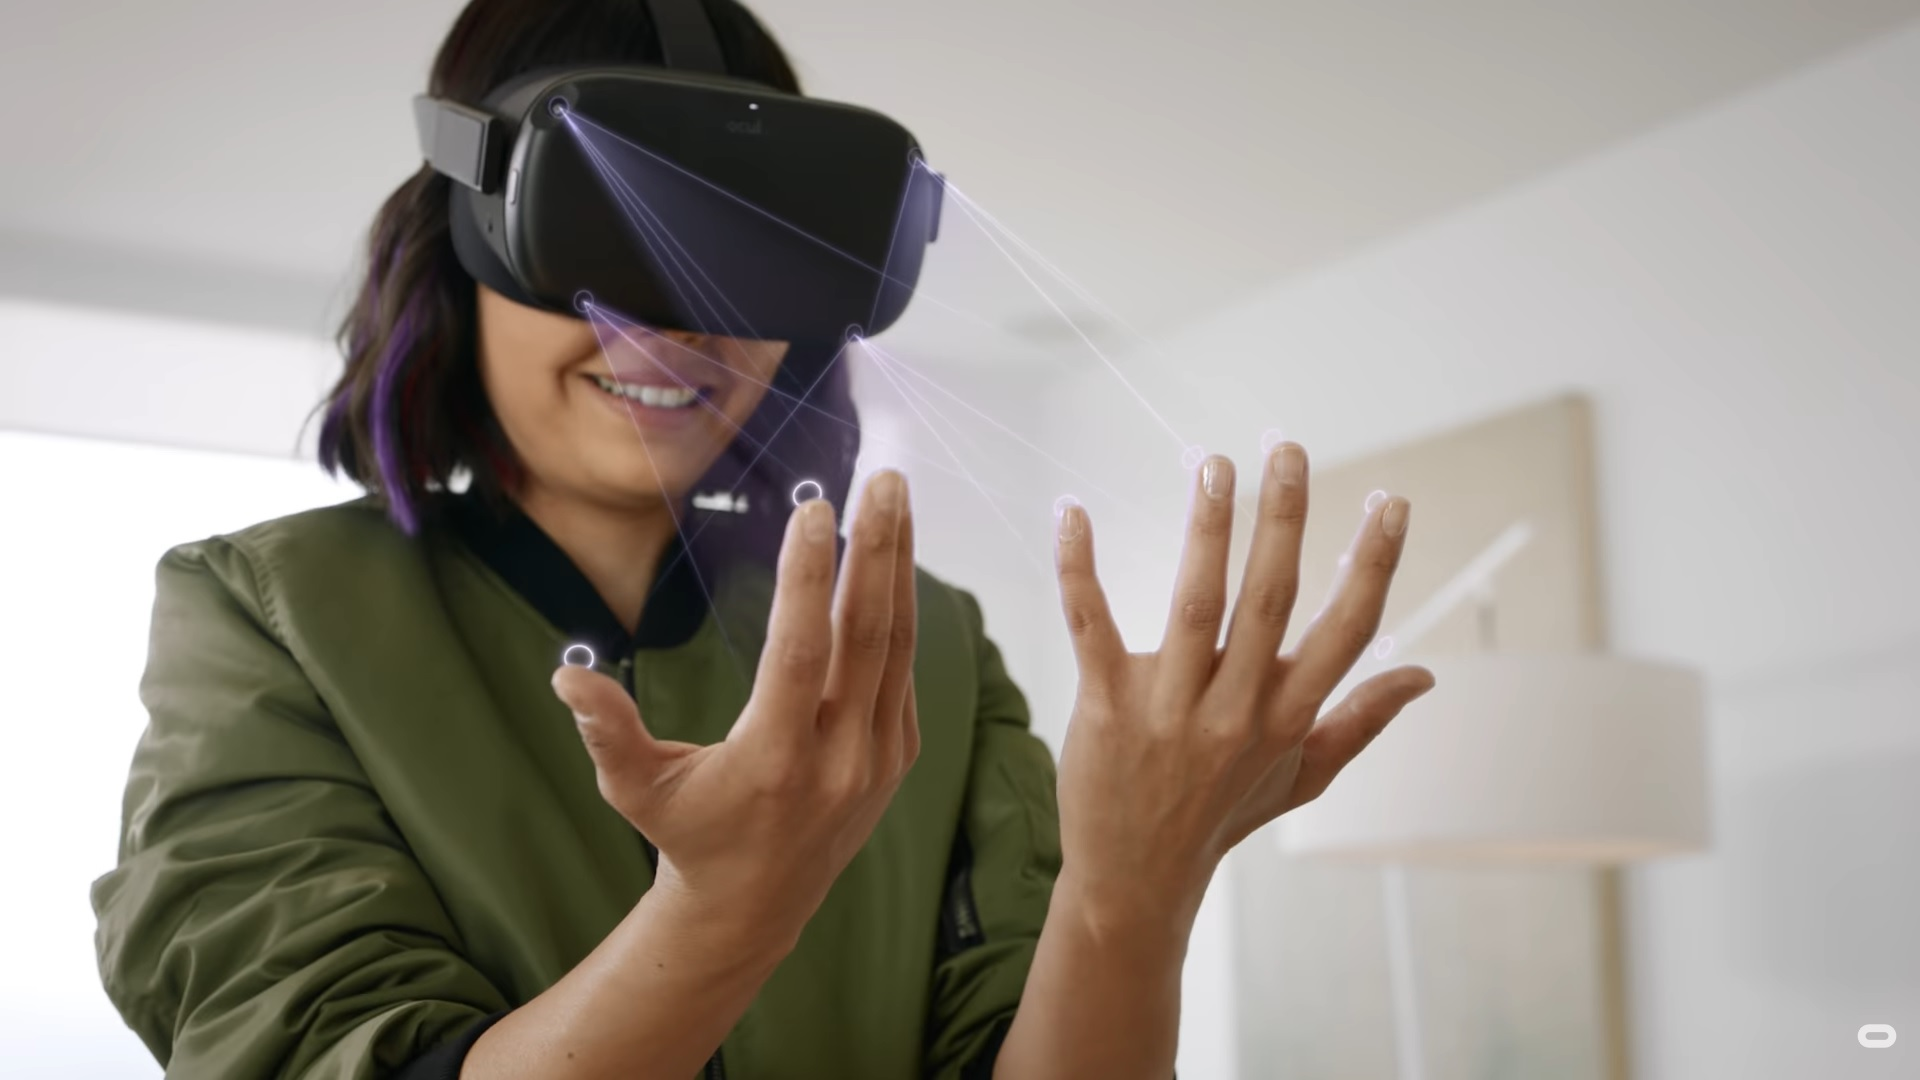 Hand Tracking And Full Pc Game Support Coming To Oculus Quest